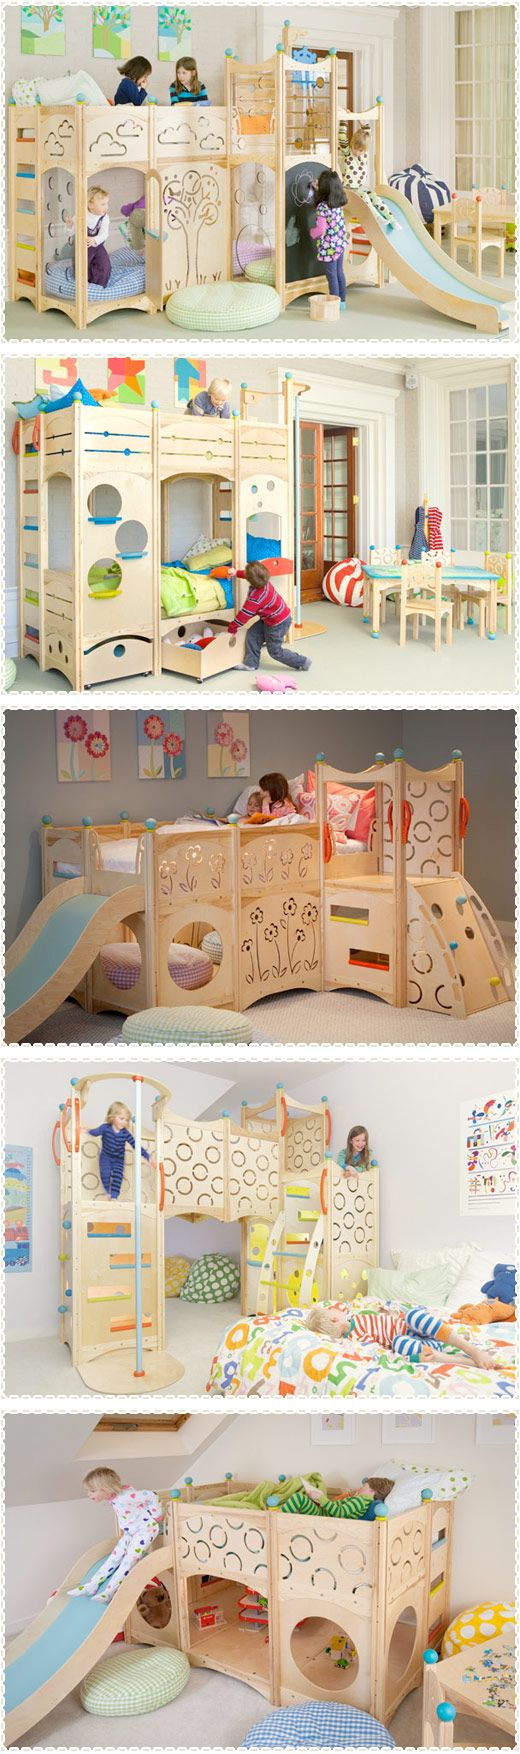 These Amazing Indoor Playsets / Bunks / Beds For Kids From The Creative  Folks At CedarWorks